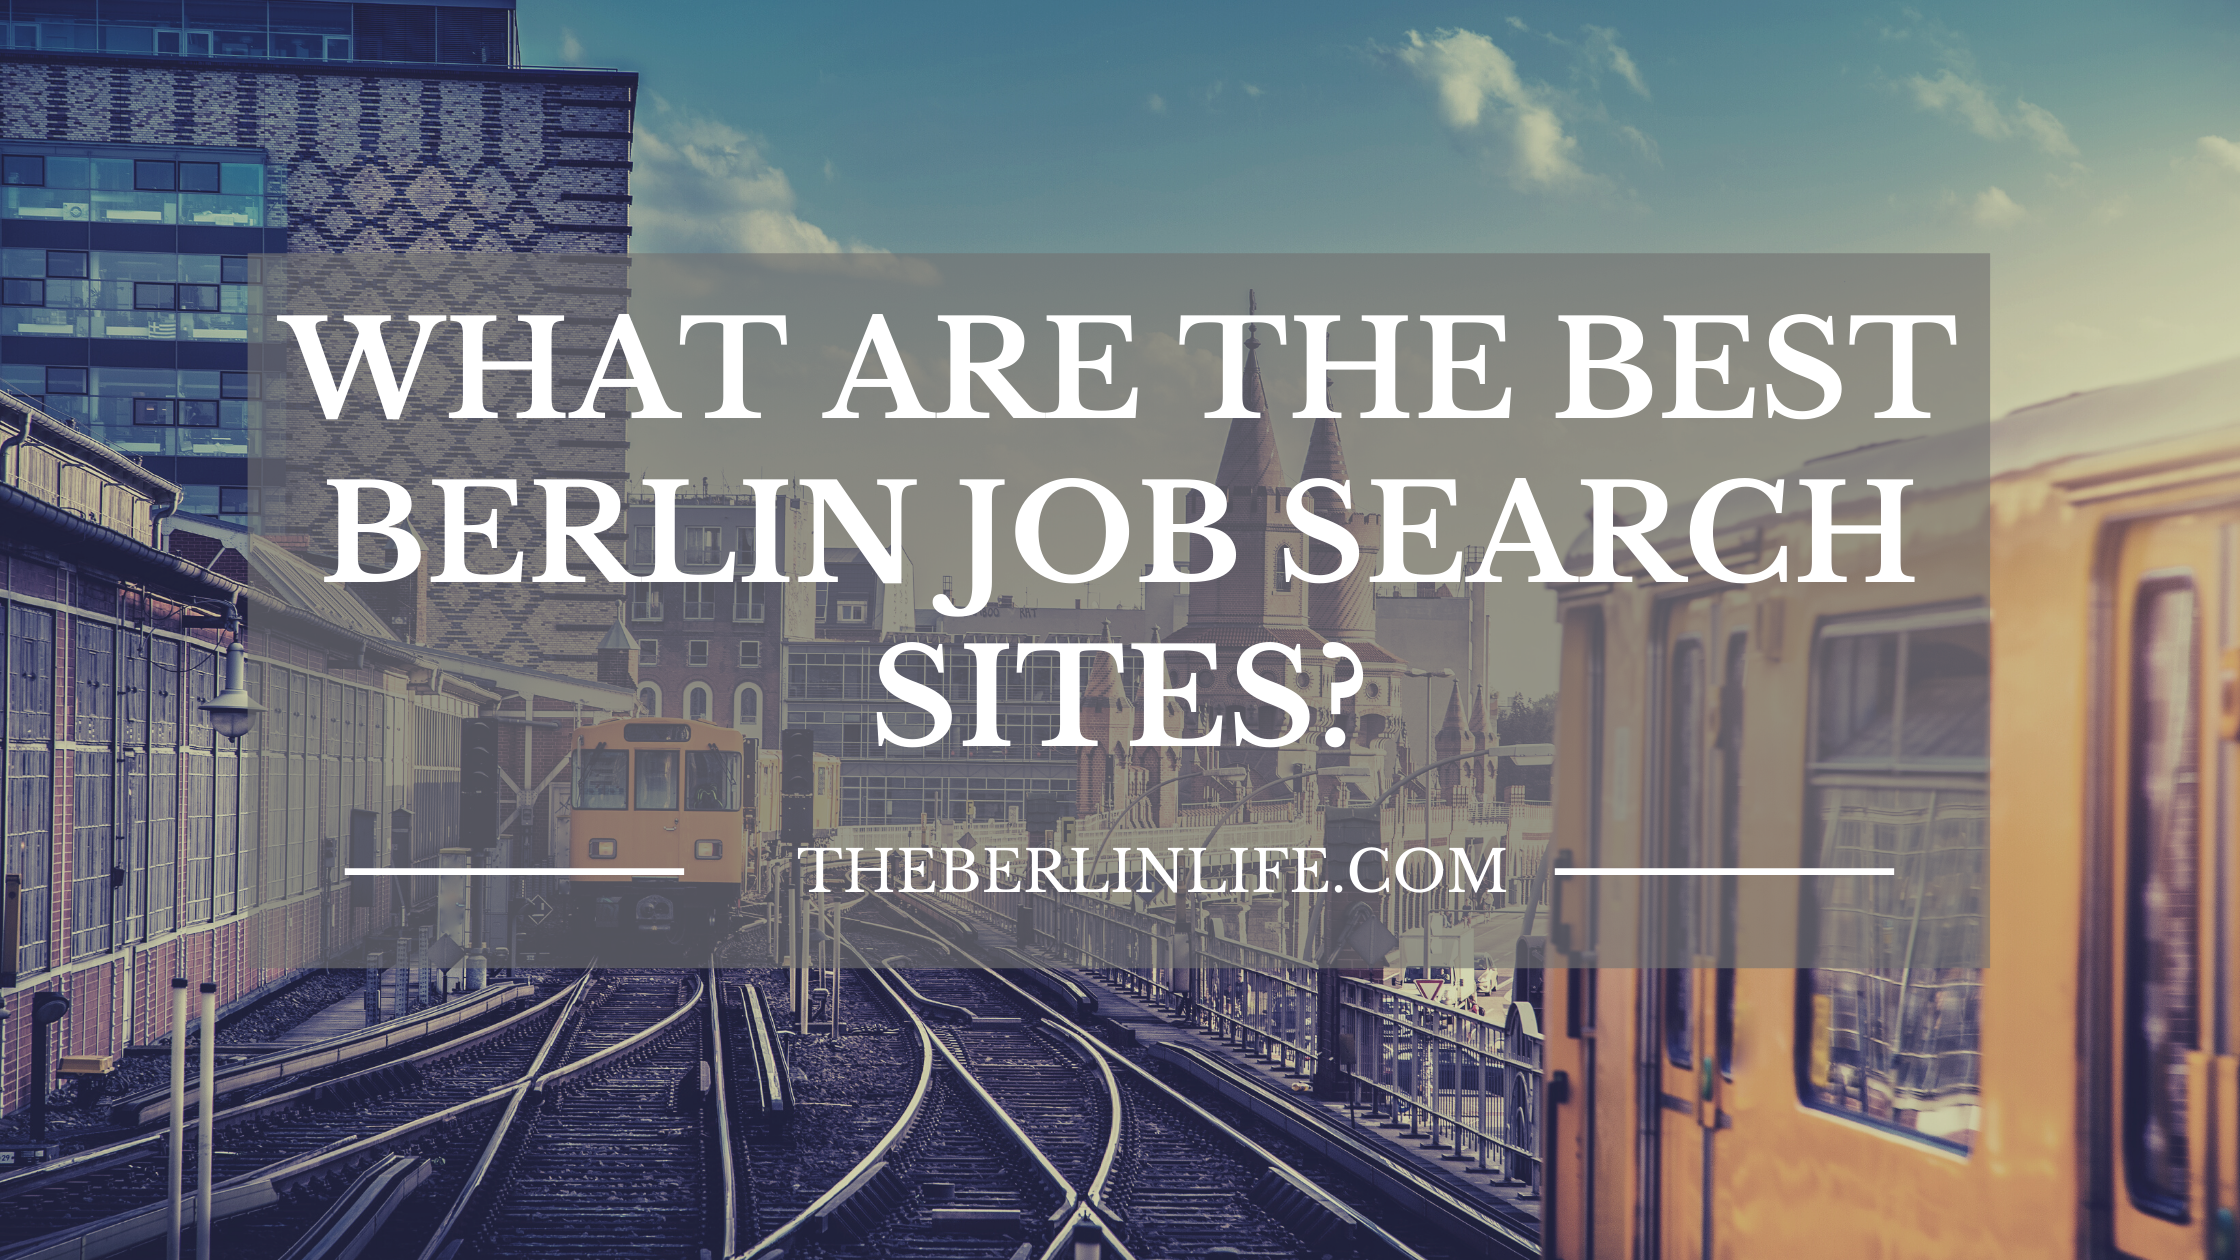 What Are The Best Berlin Job Search Websites?